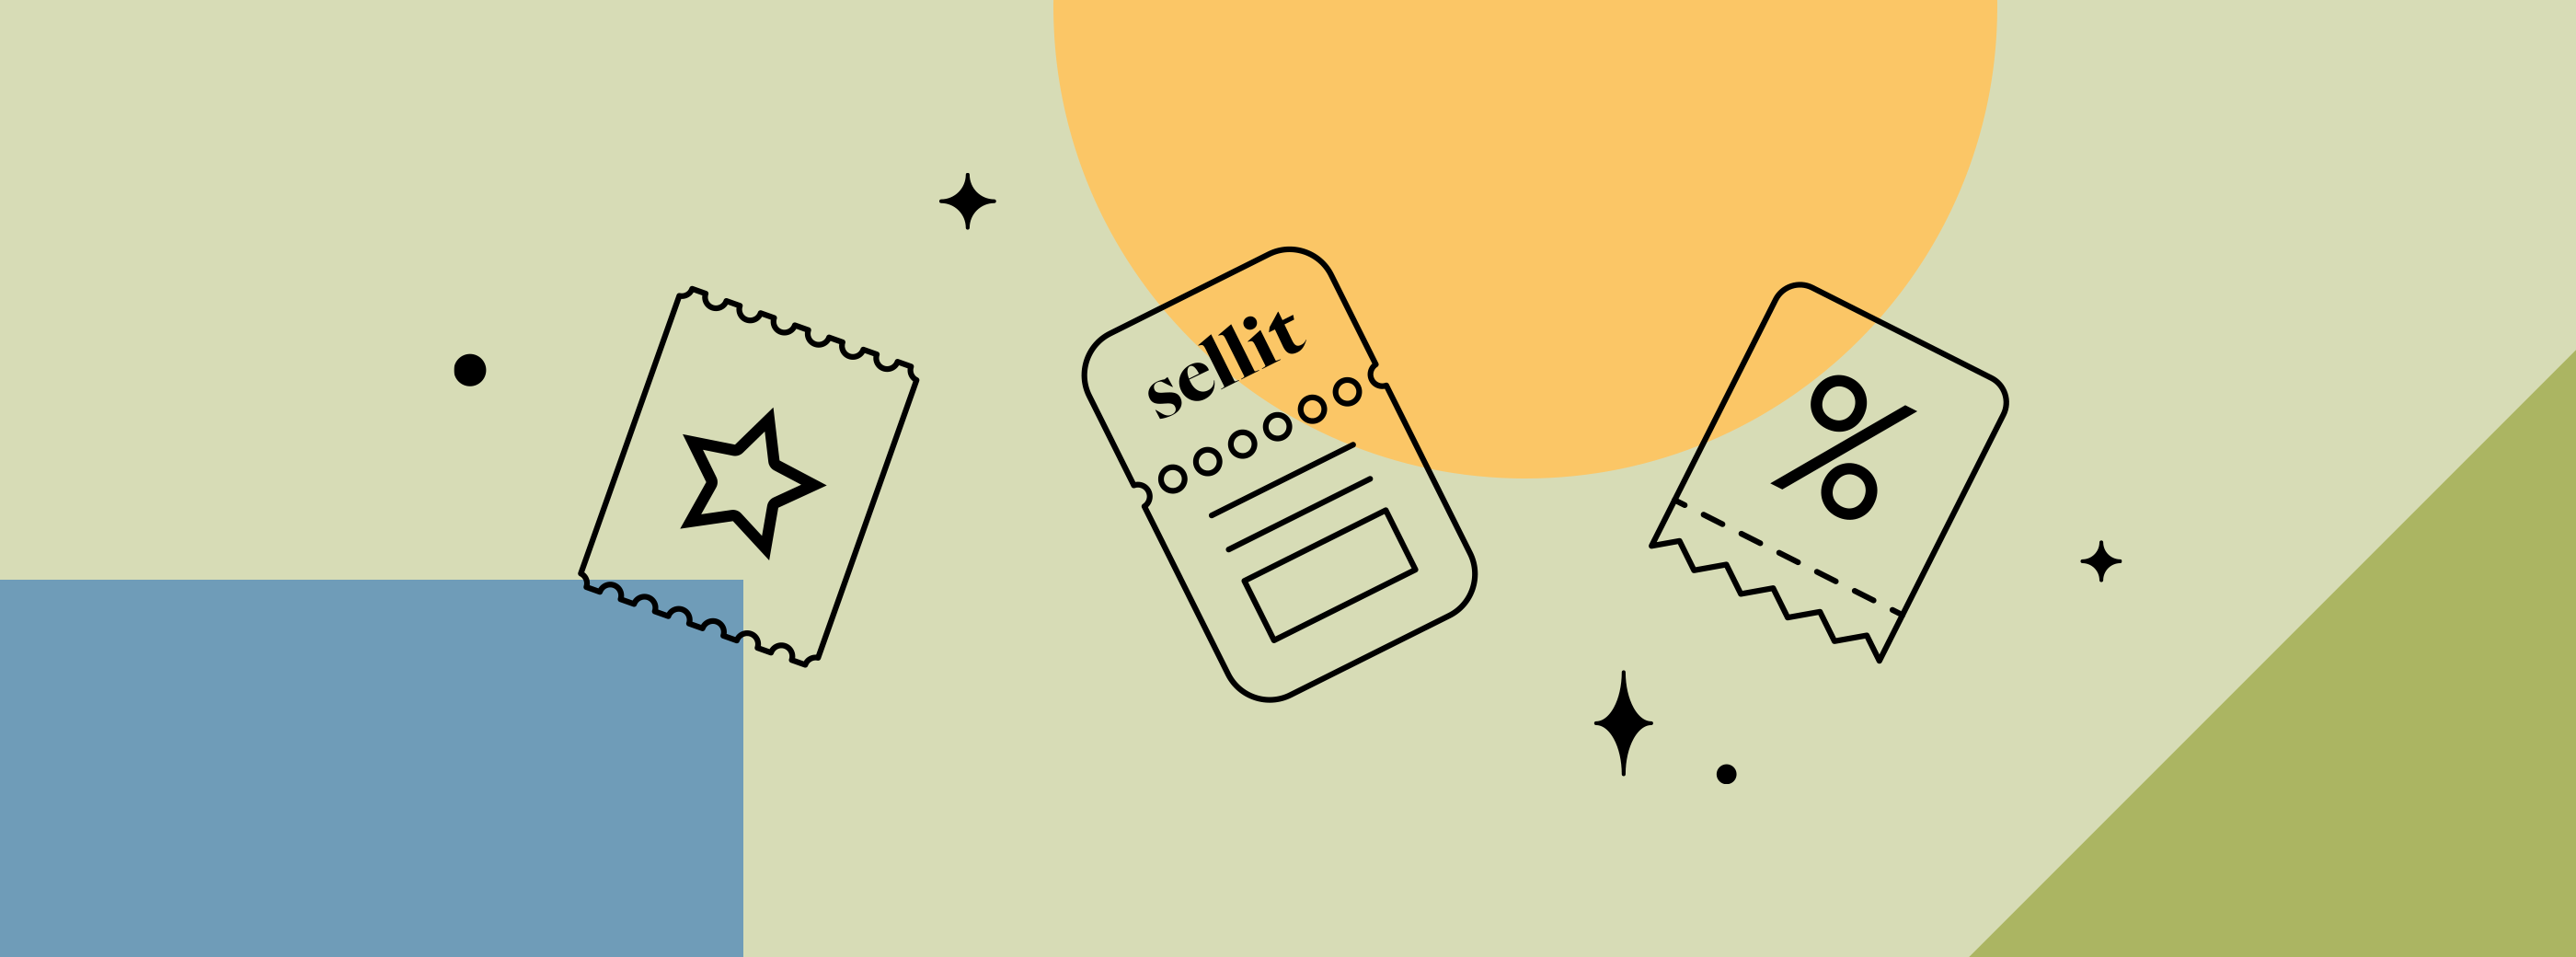 sellit Coupons: New Feature to Help Increase Sales This Holiday